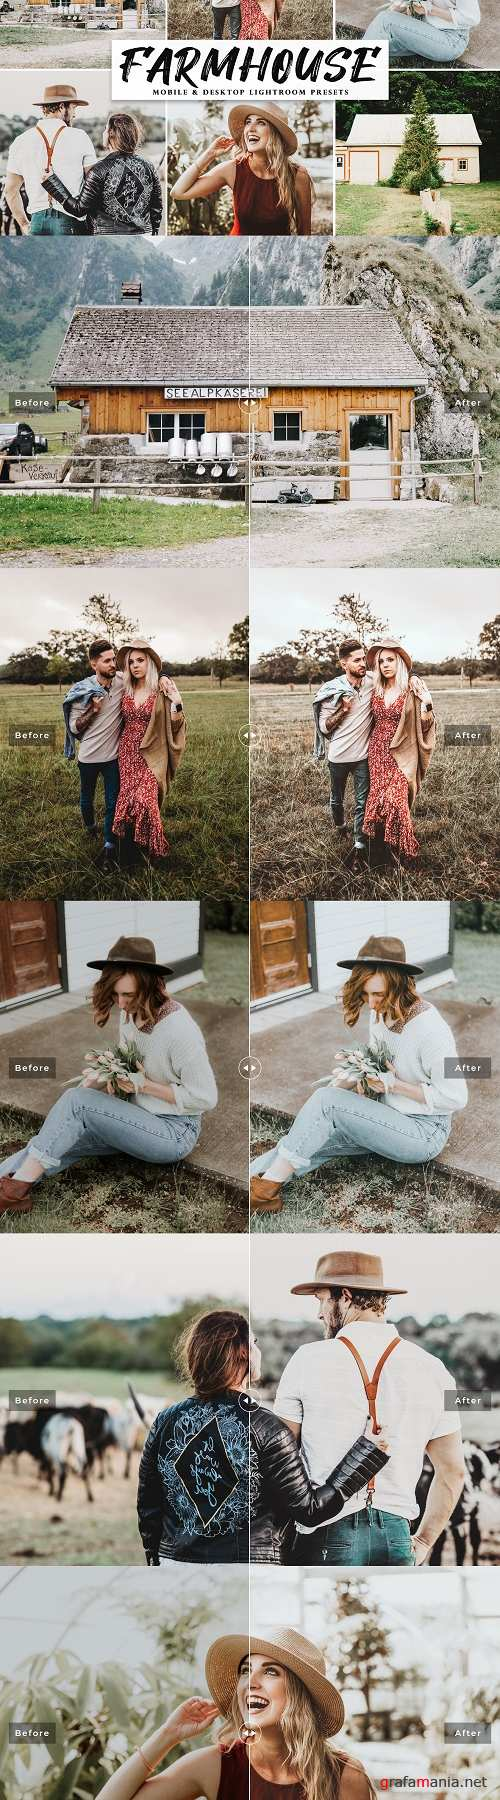 Farmhouse Lightroom Presets Pack - 4226183 - Mobile & Desktop